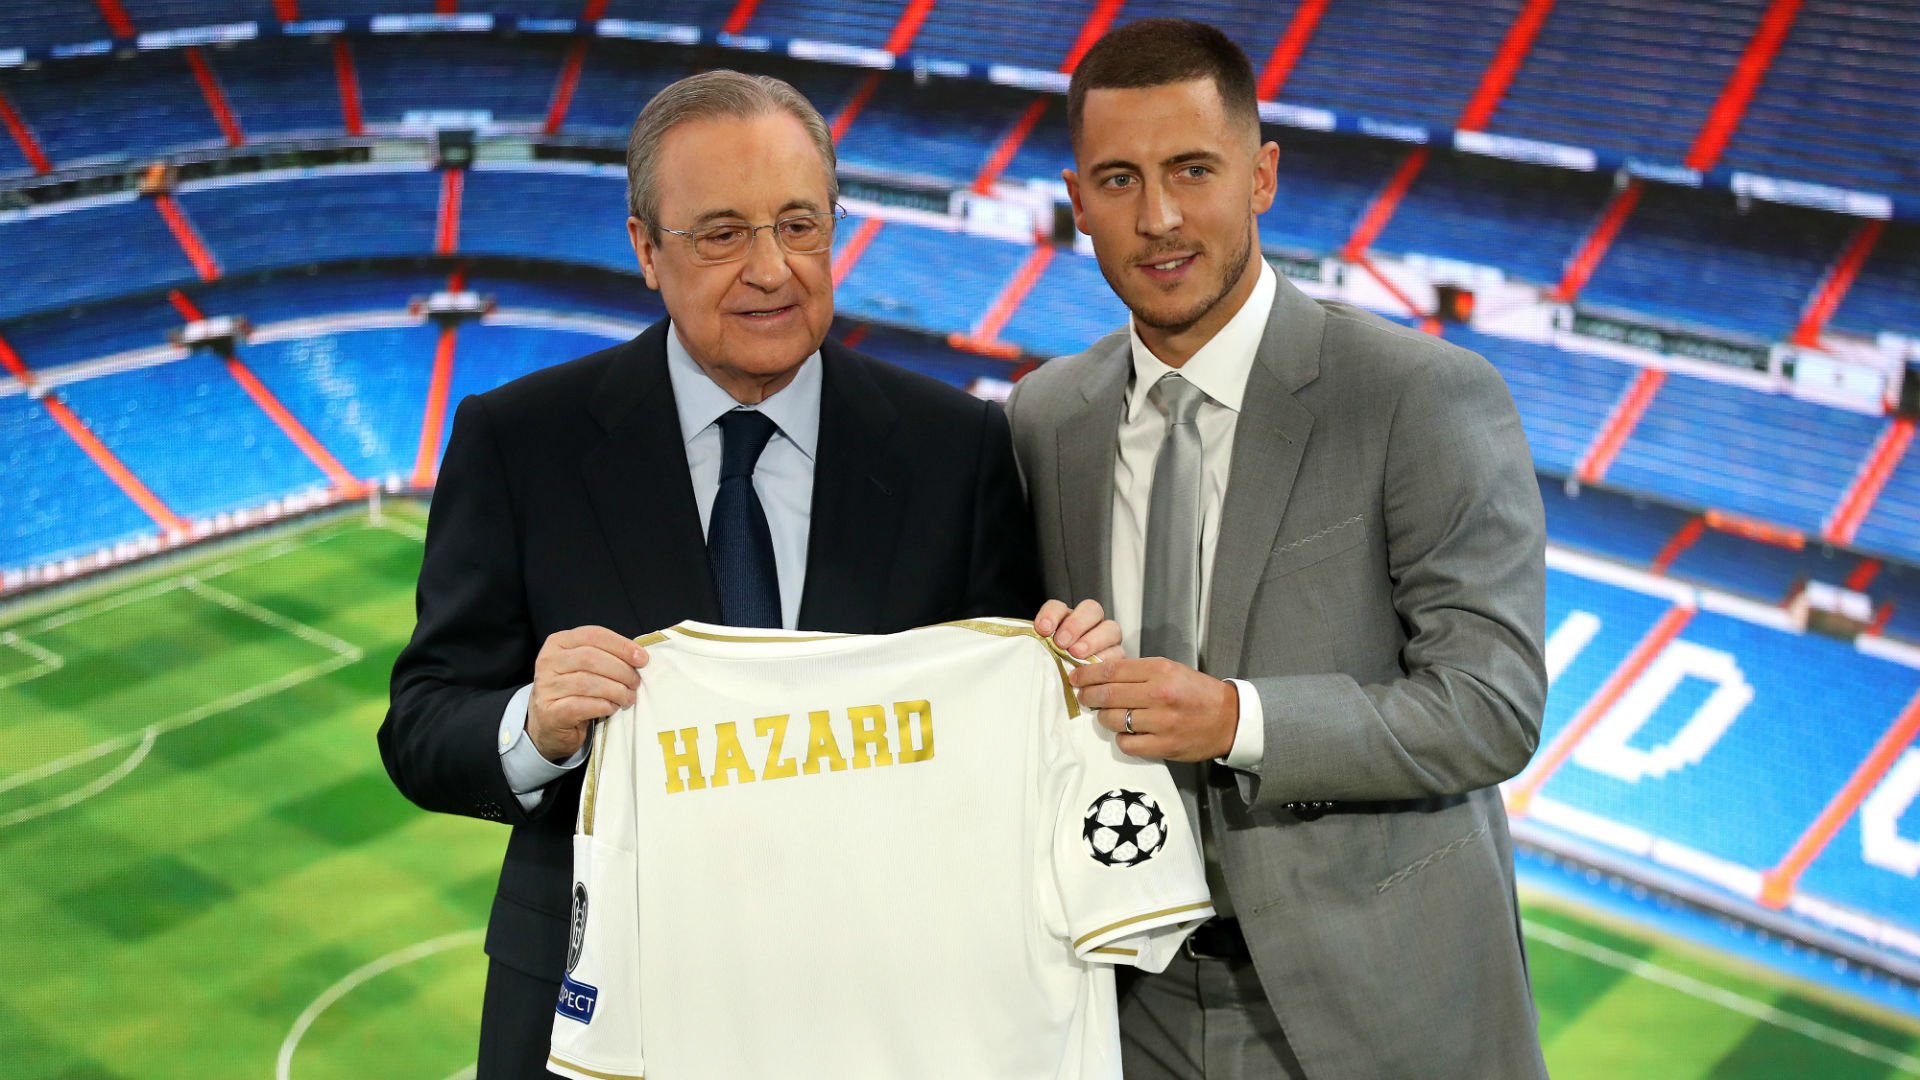 Hazard held Courtois and Perez talks before Real Madrid move